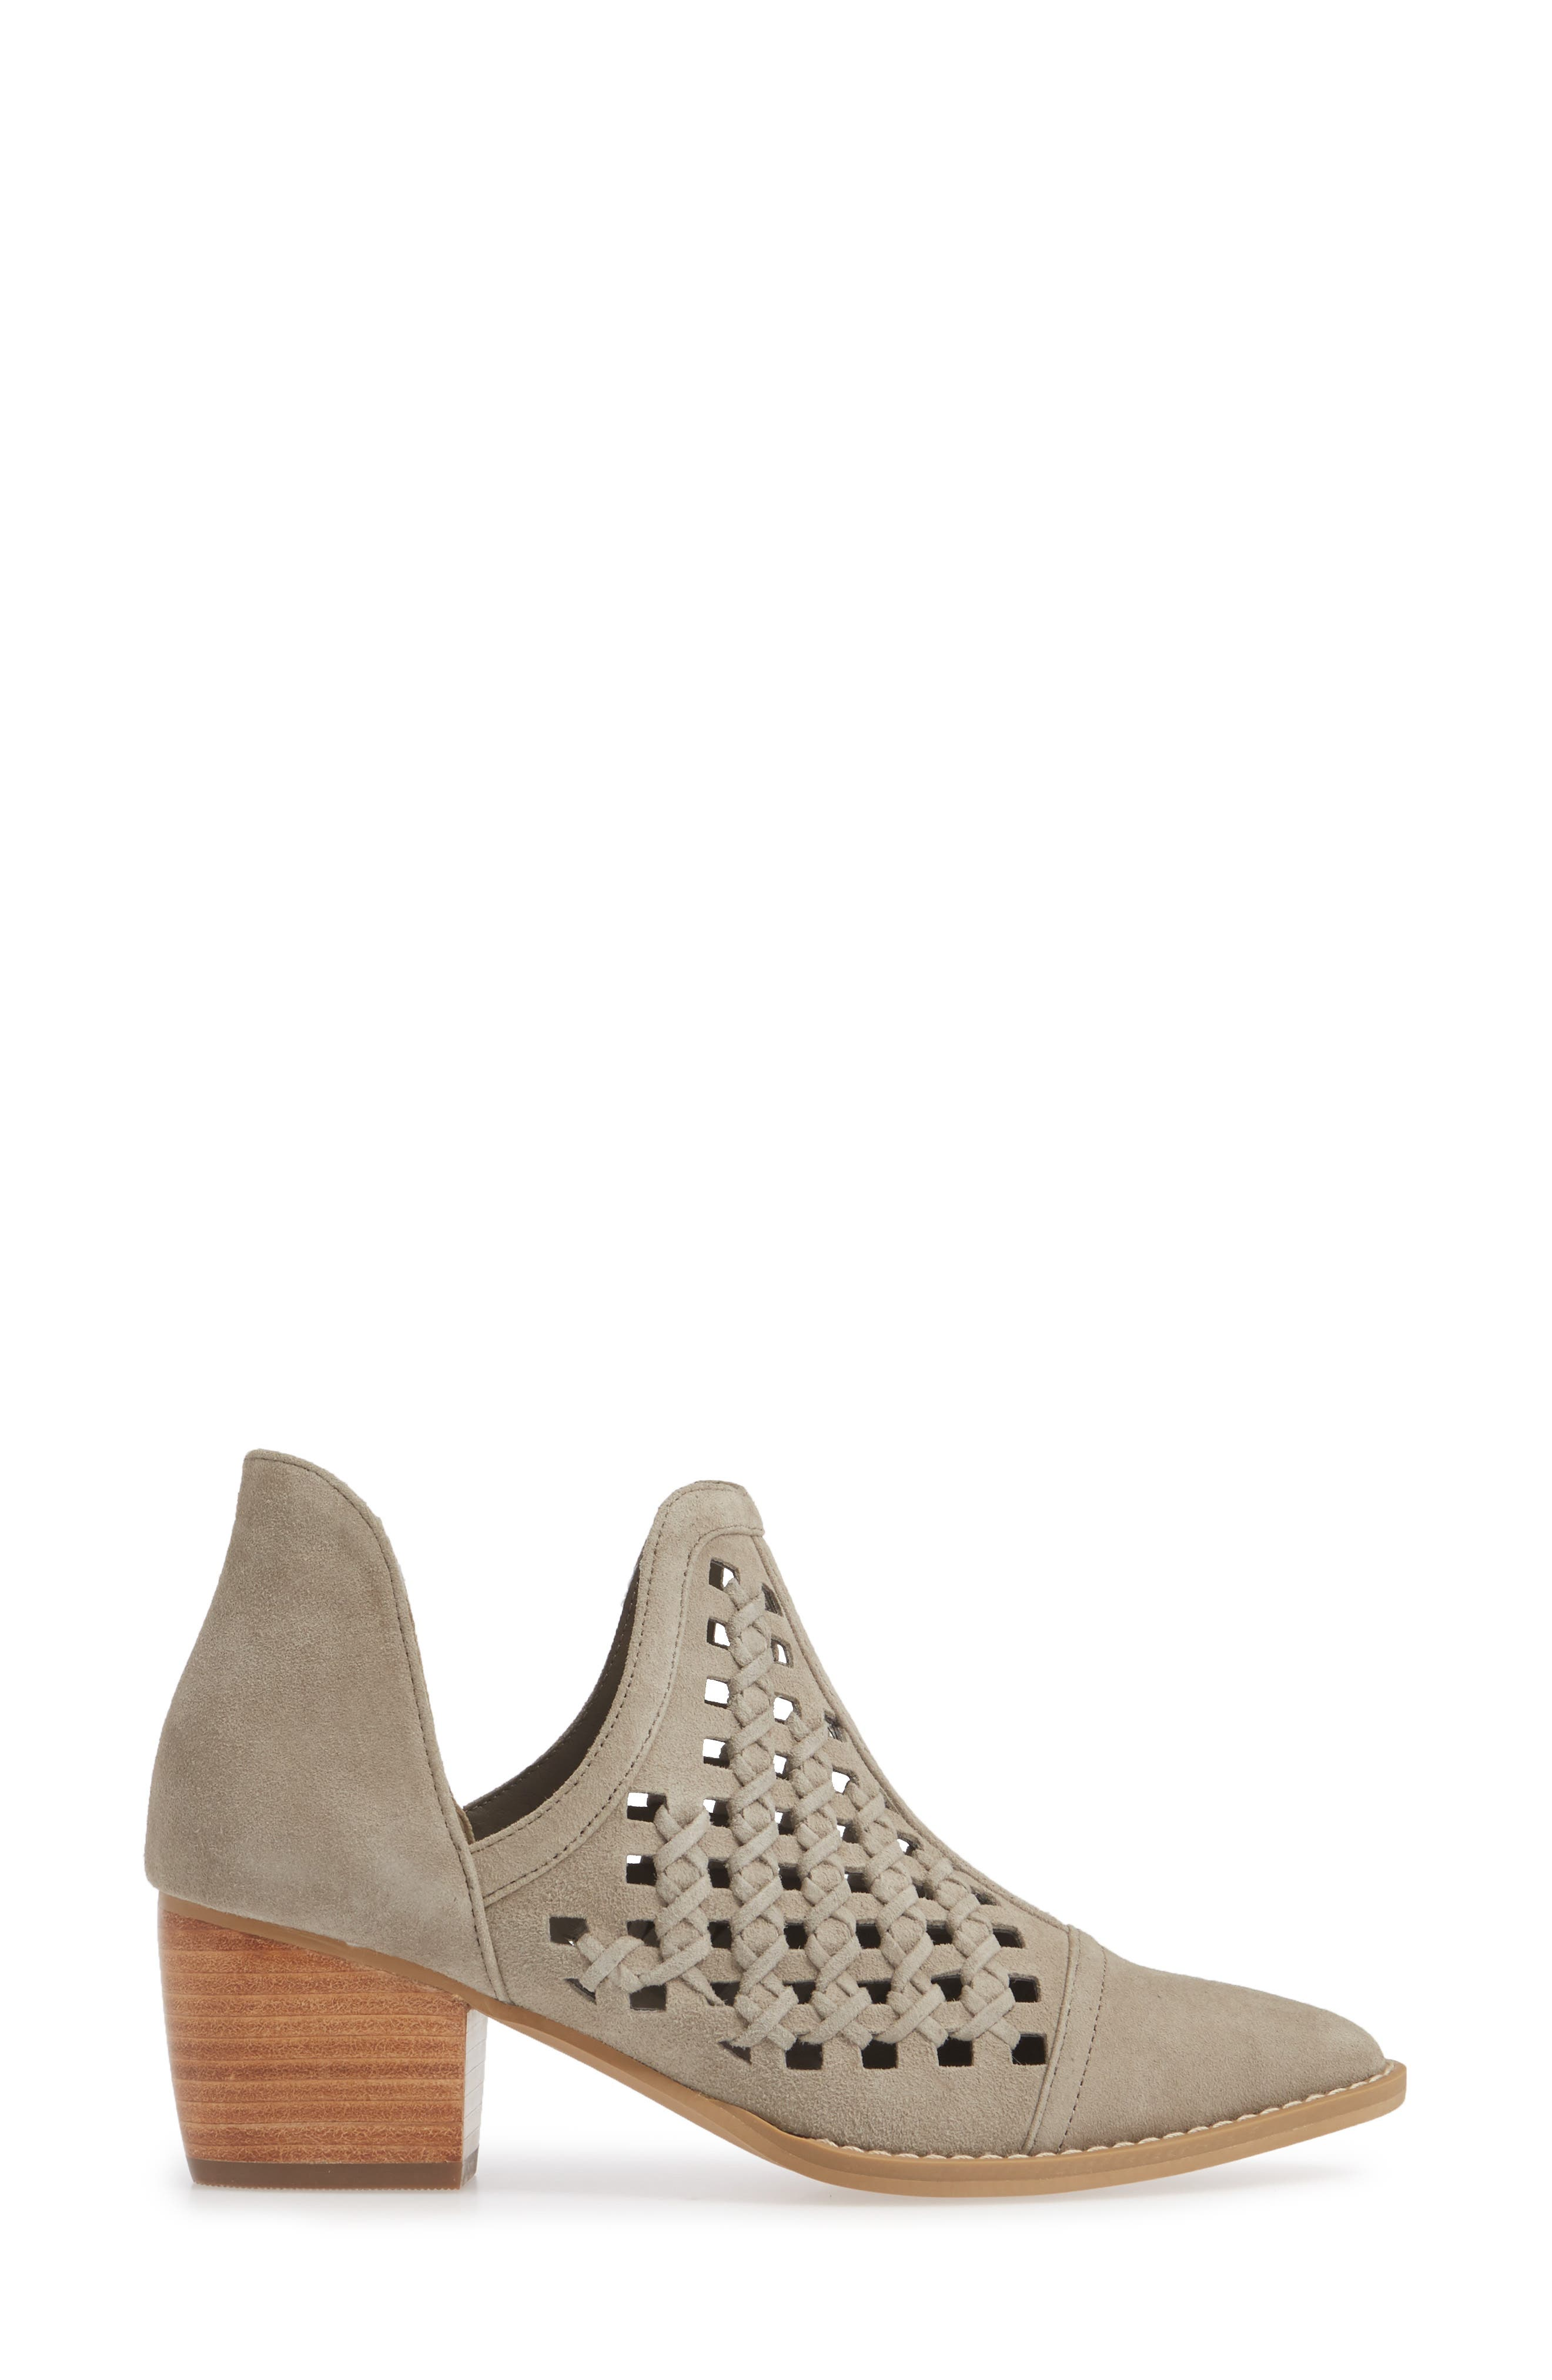 BP., Tate Bootie, Alternate thumbnail 3, color, TAUPE SUEDE